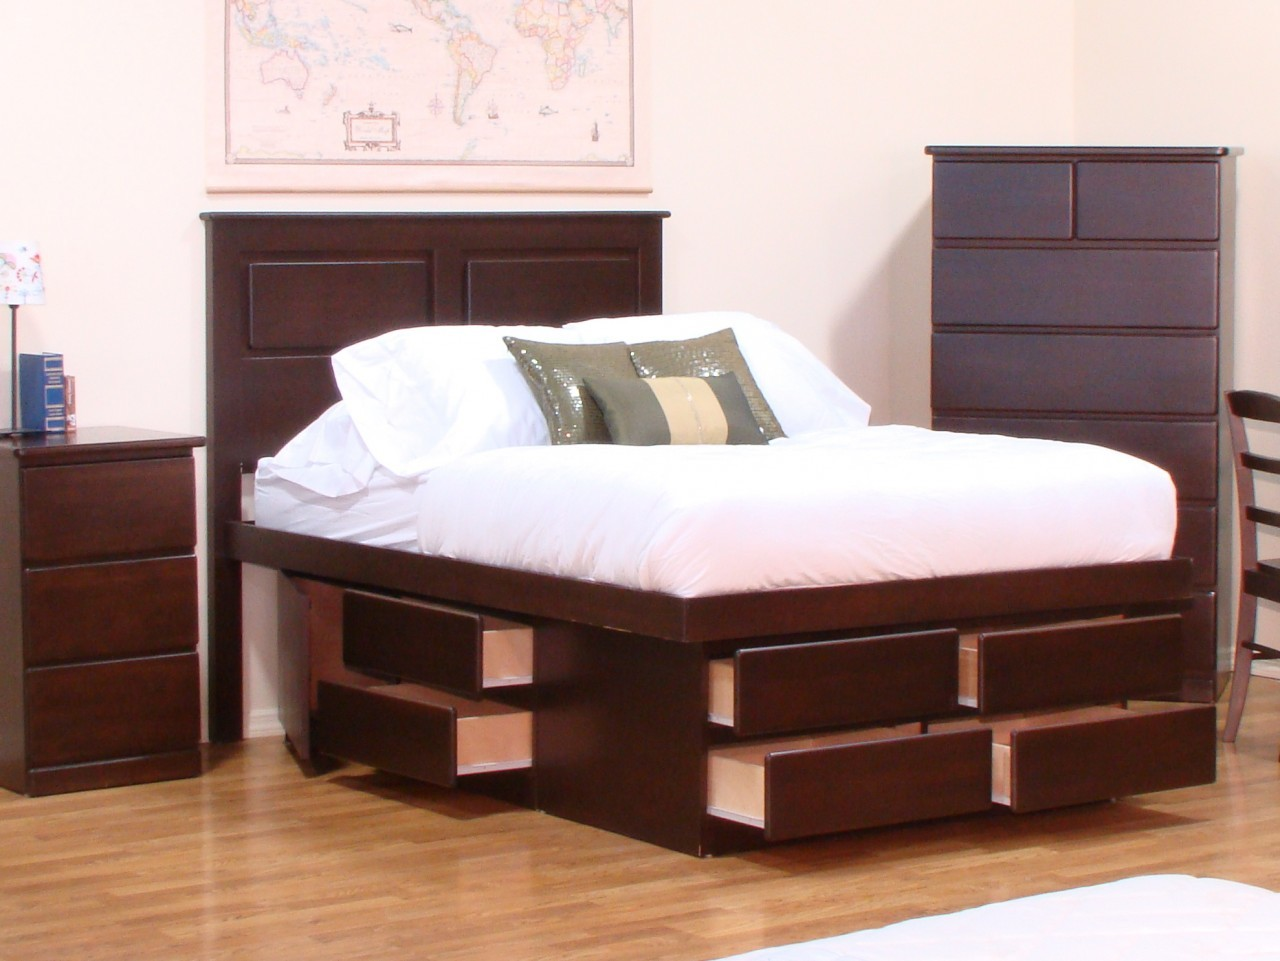 Image of: Platform Storage Bed Queen Brown